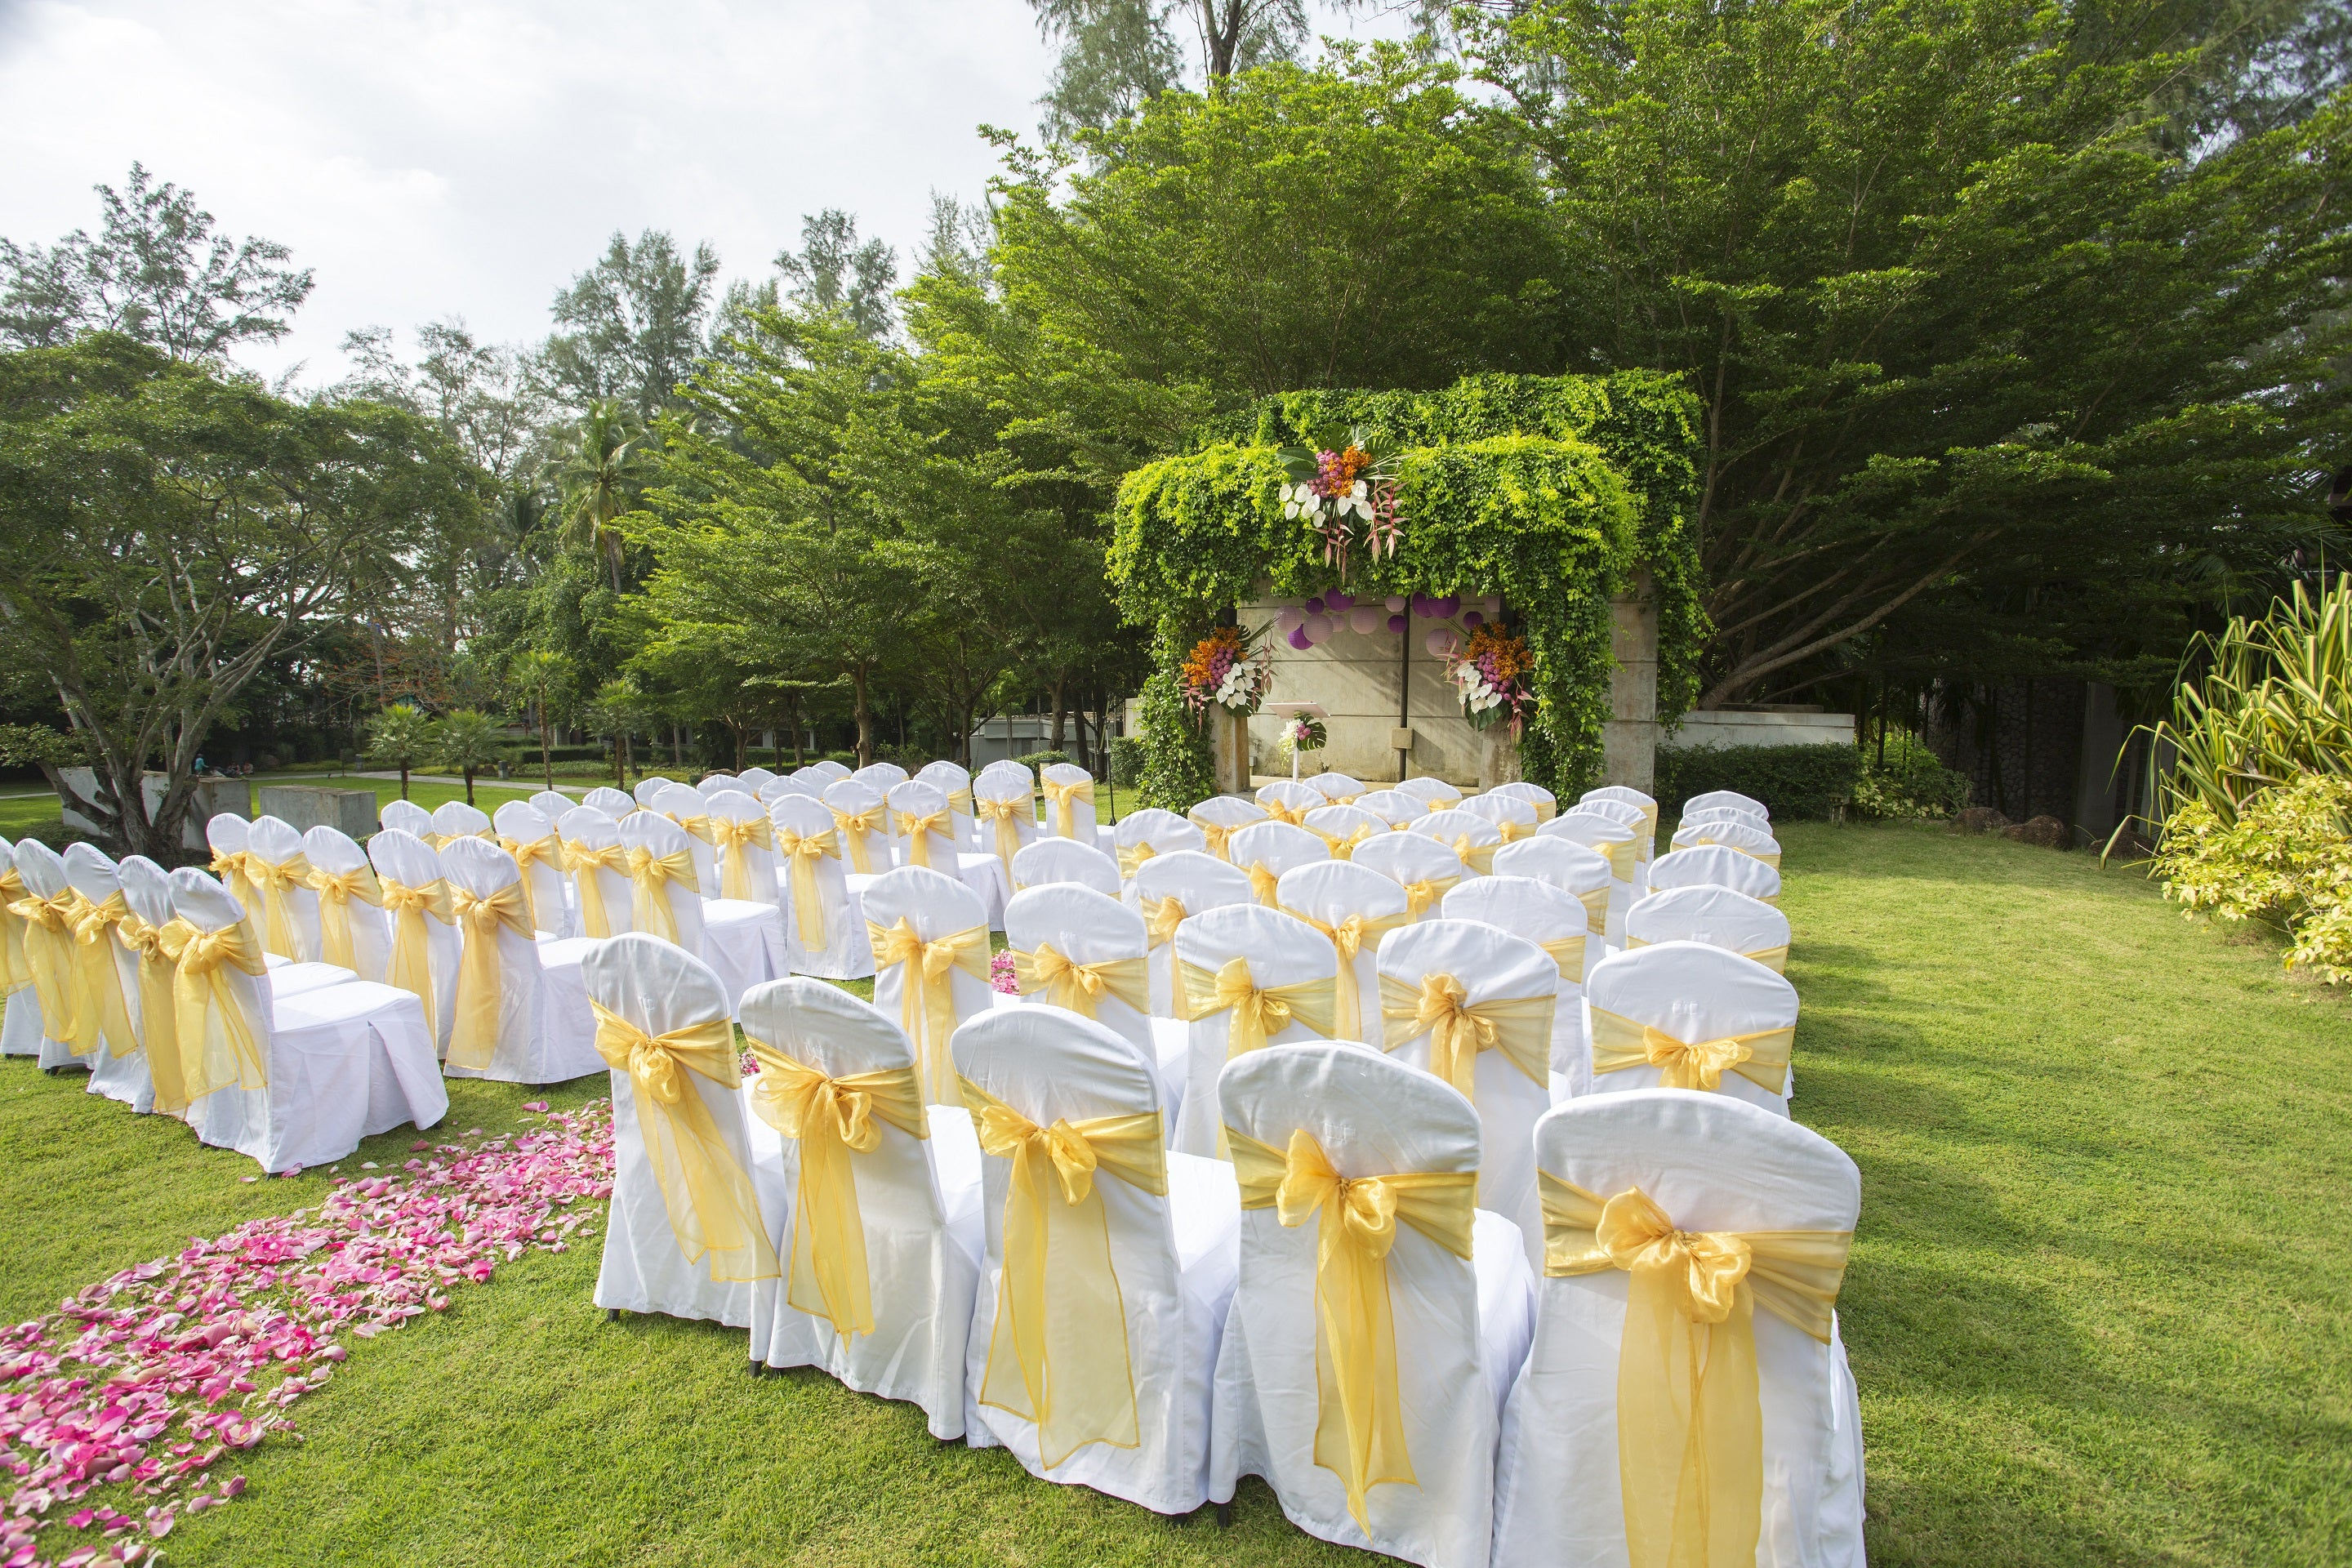 chair covers over chairs on grass at a wedding